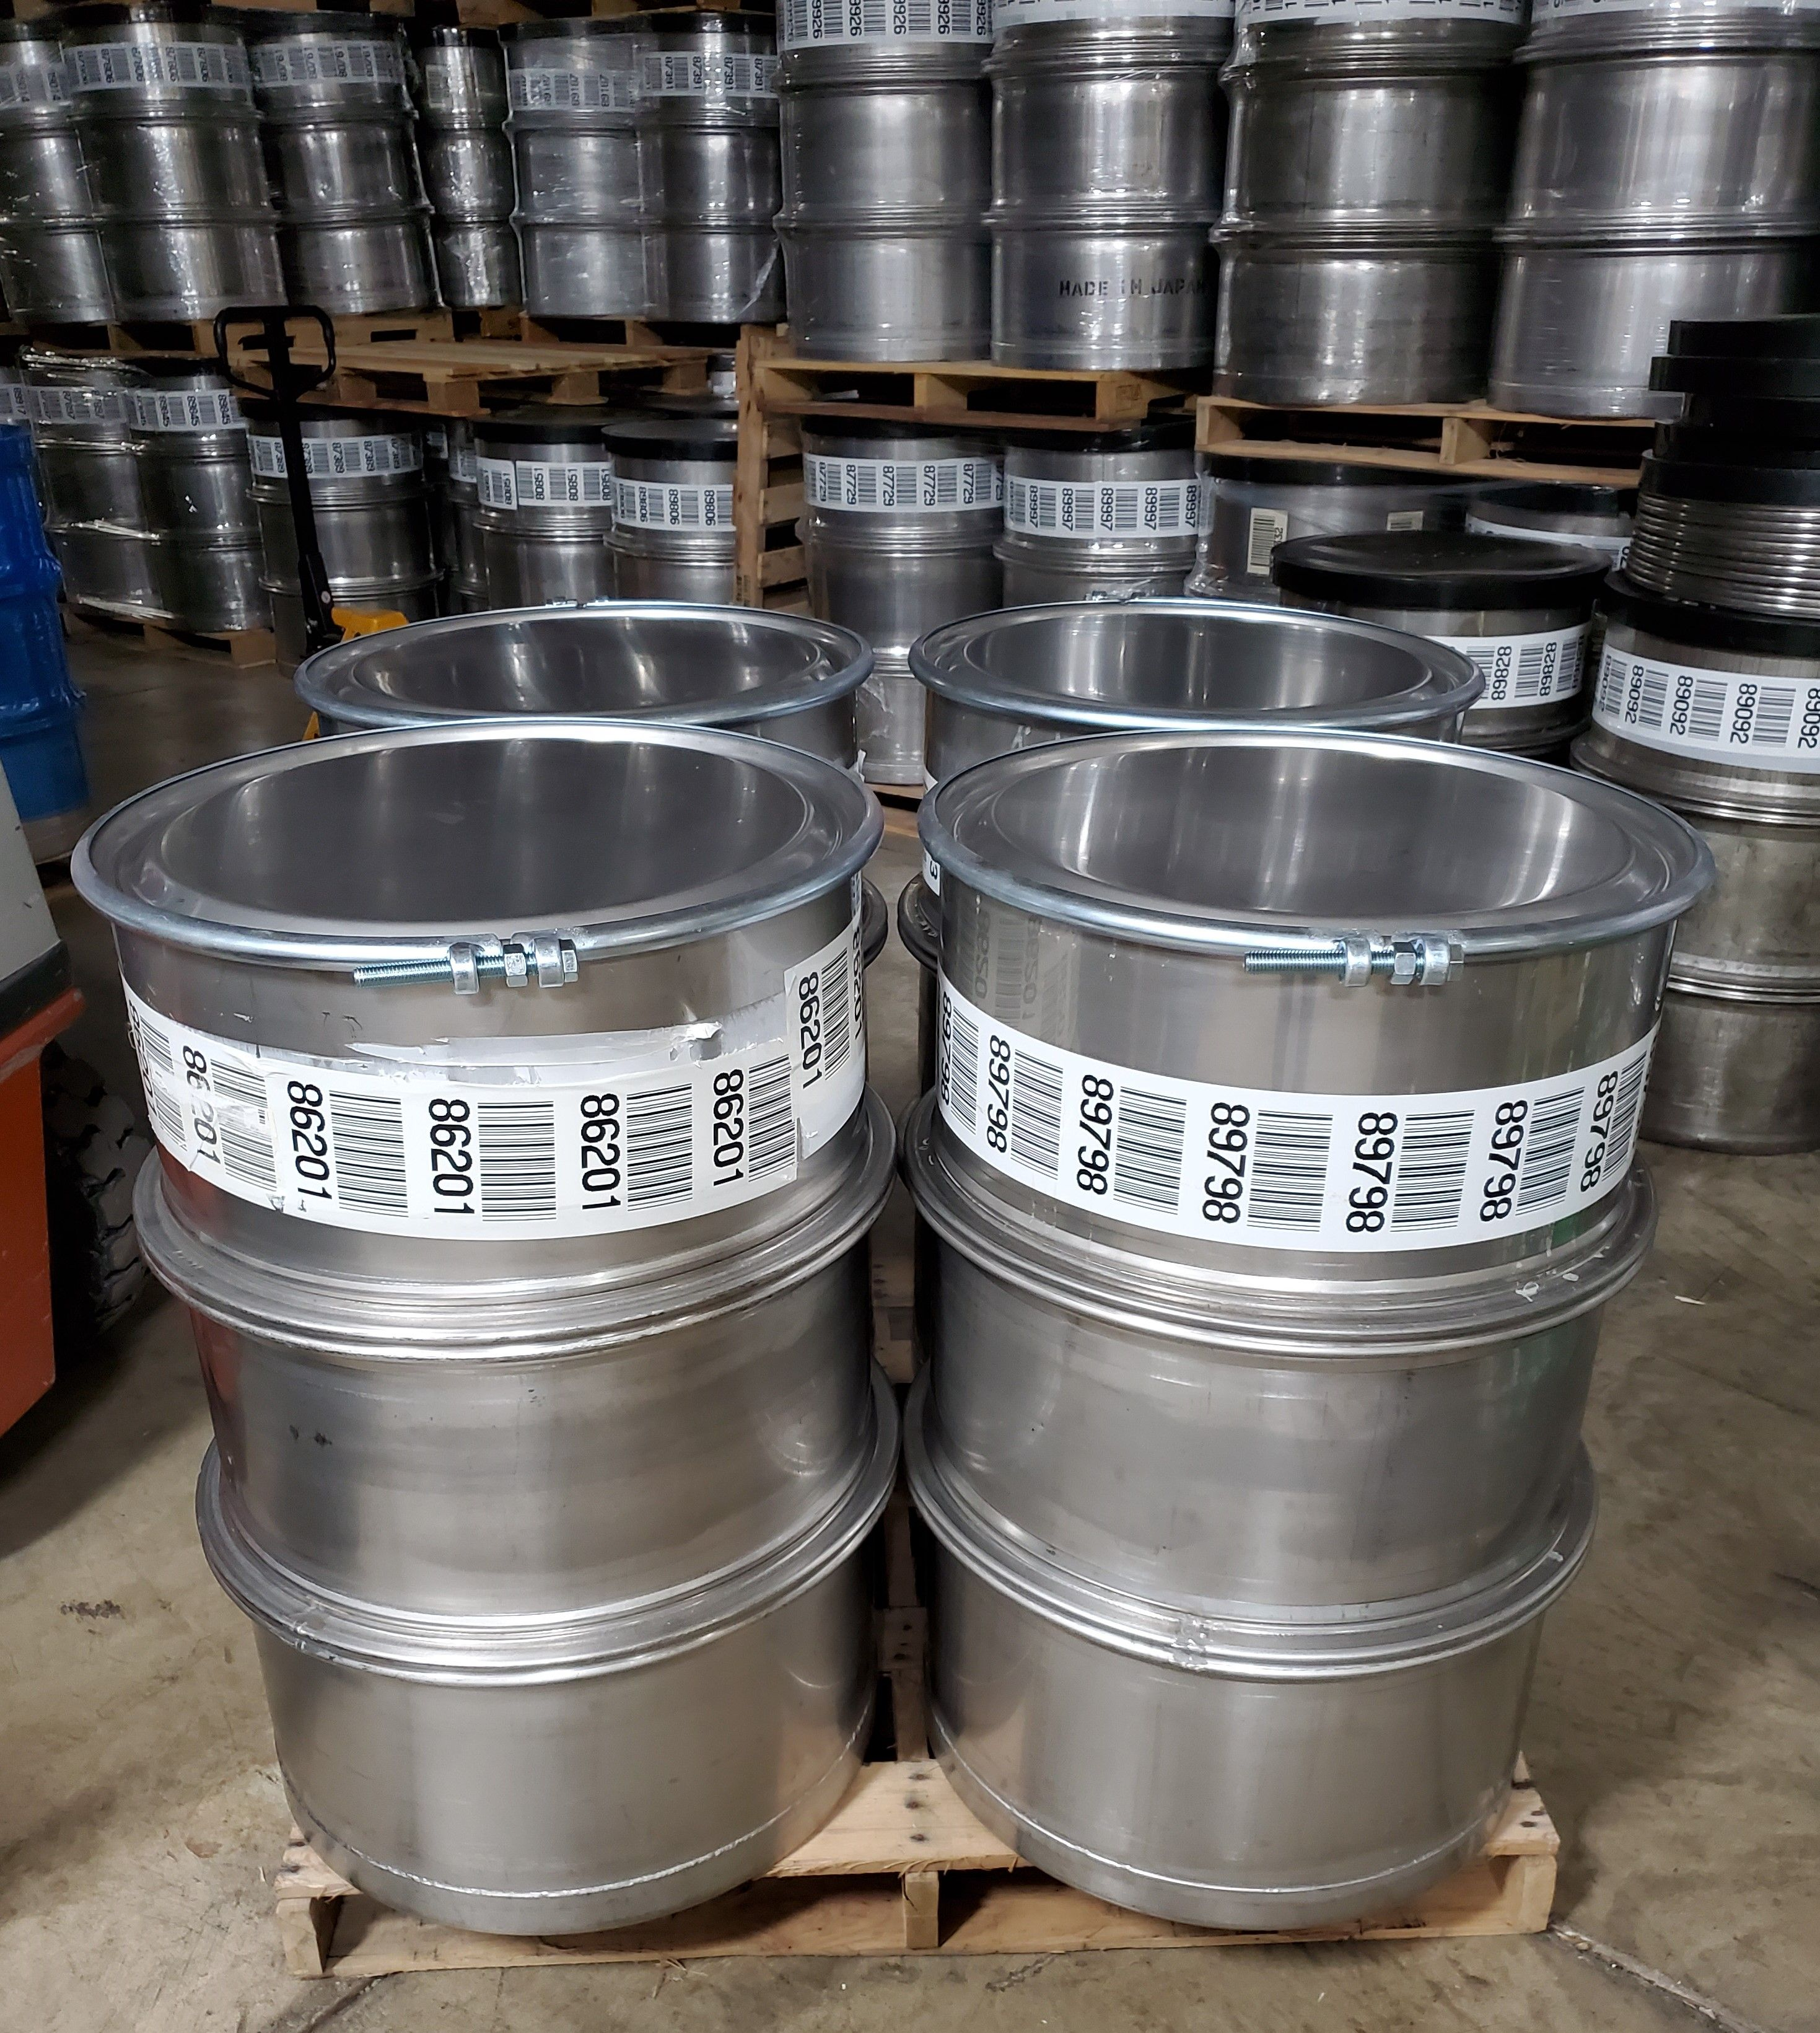 55 Gallon Used Stainless Steel Barrel In 2020 Steel Barrel Stainless Steel Drum Stainless Steel Accessories